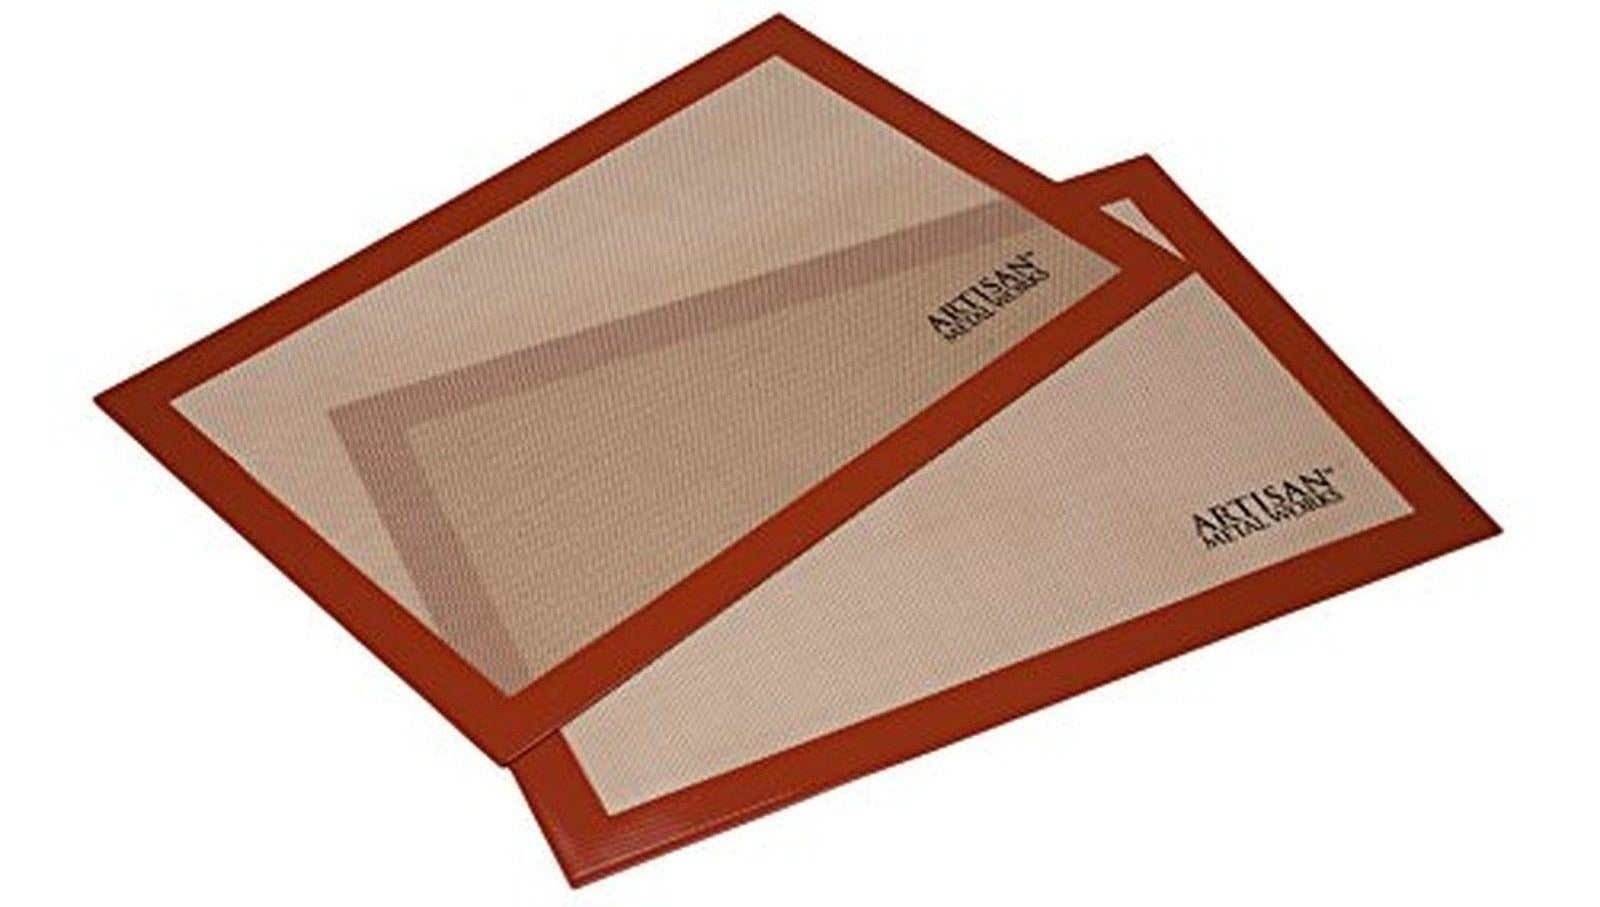 Mats are FDA- and LFGB-approved, BPA-free, and perfect for baking, roasting, and freezing.Get them from Walmart for $13.99 (originally $16.79).